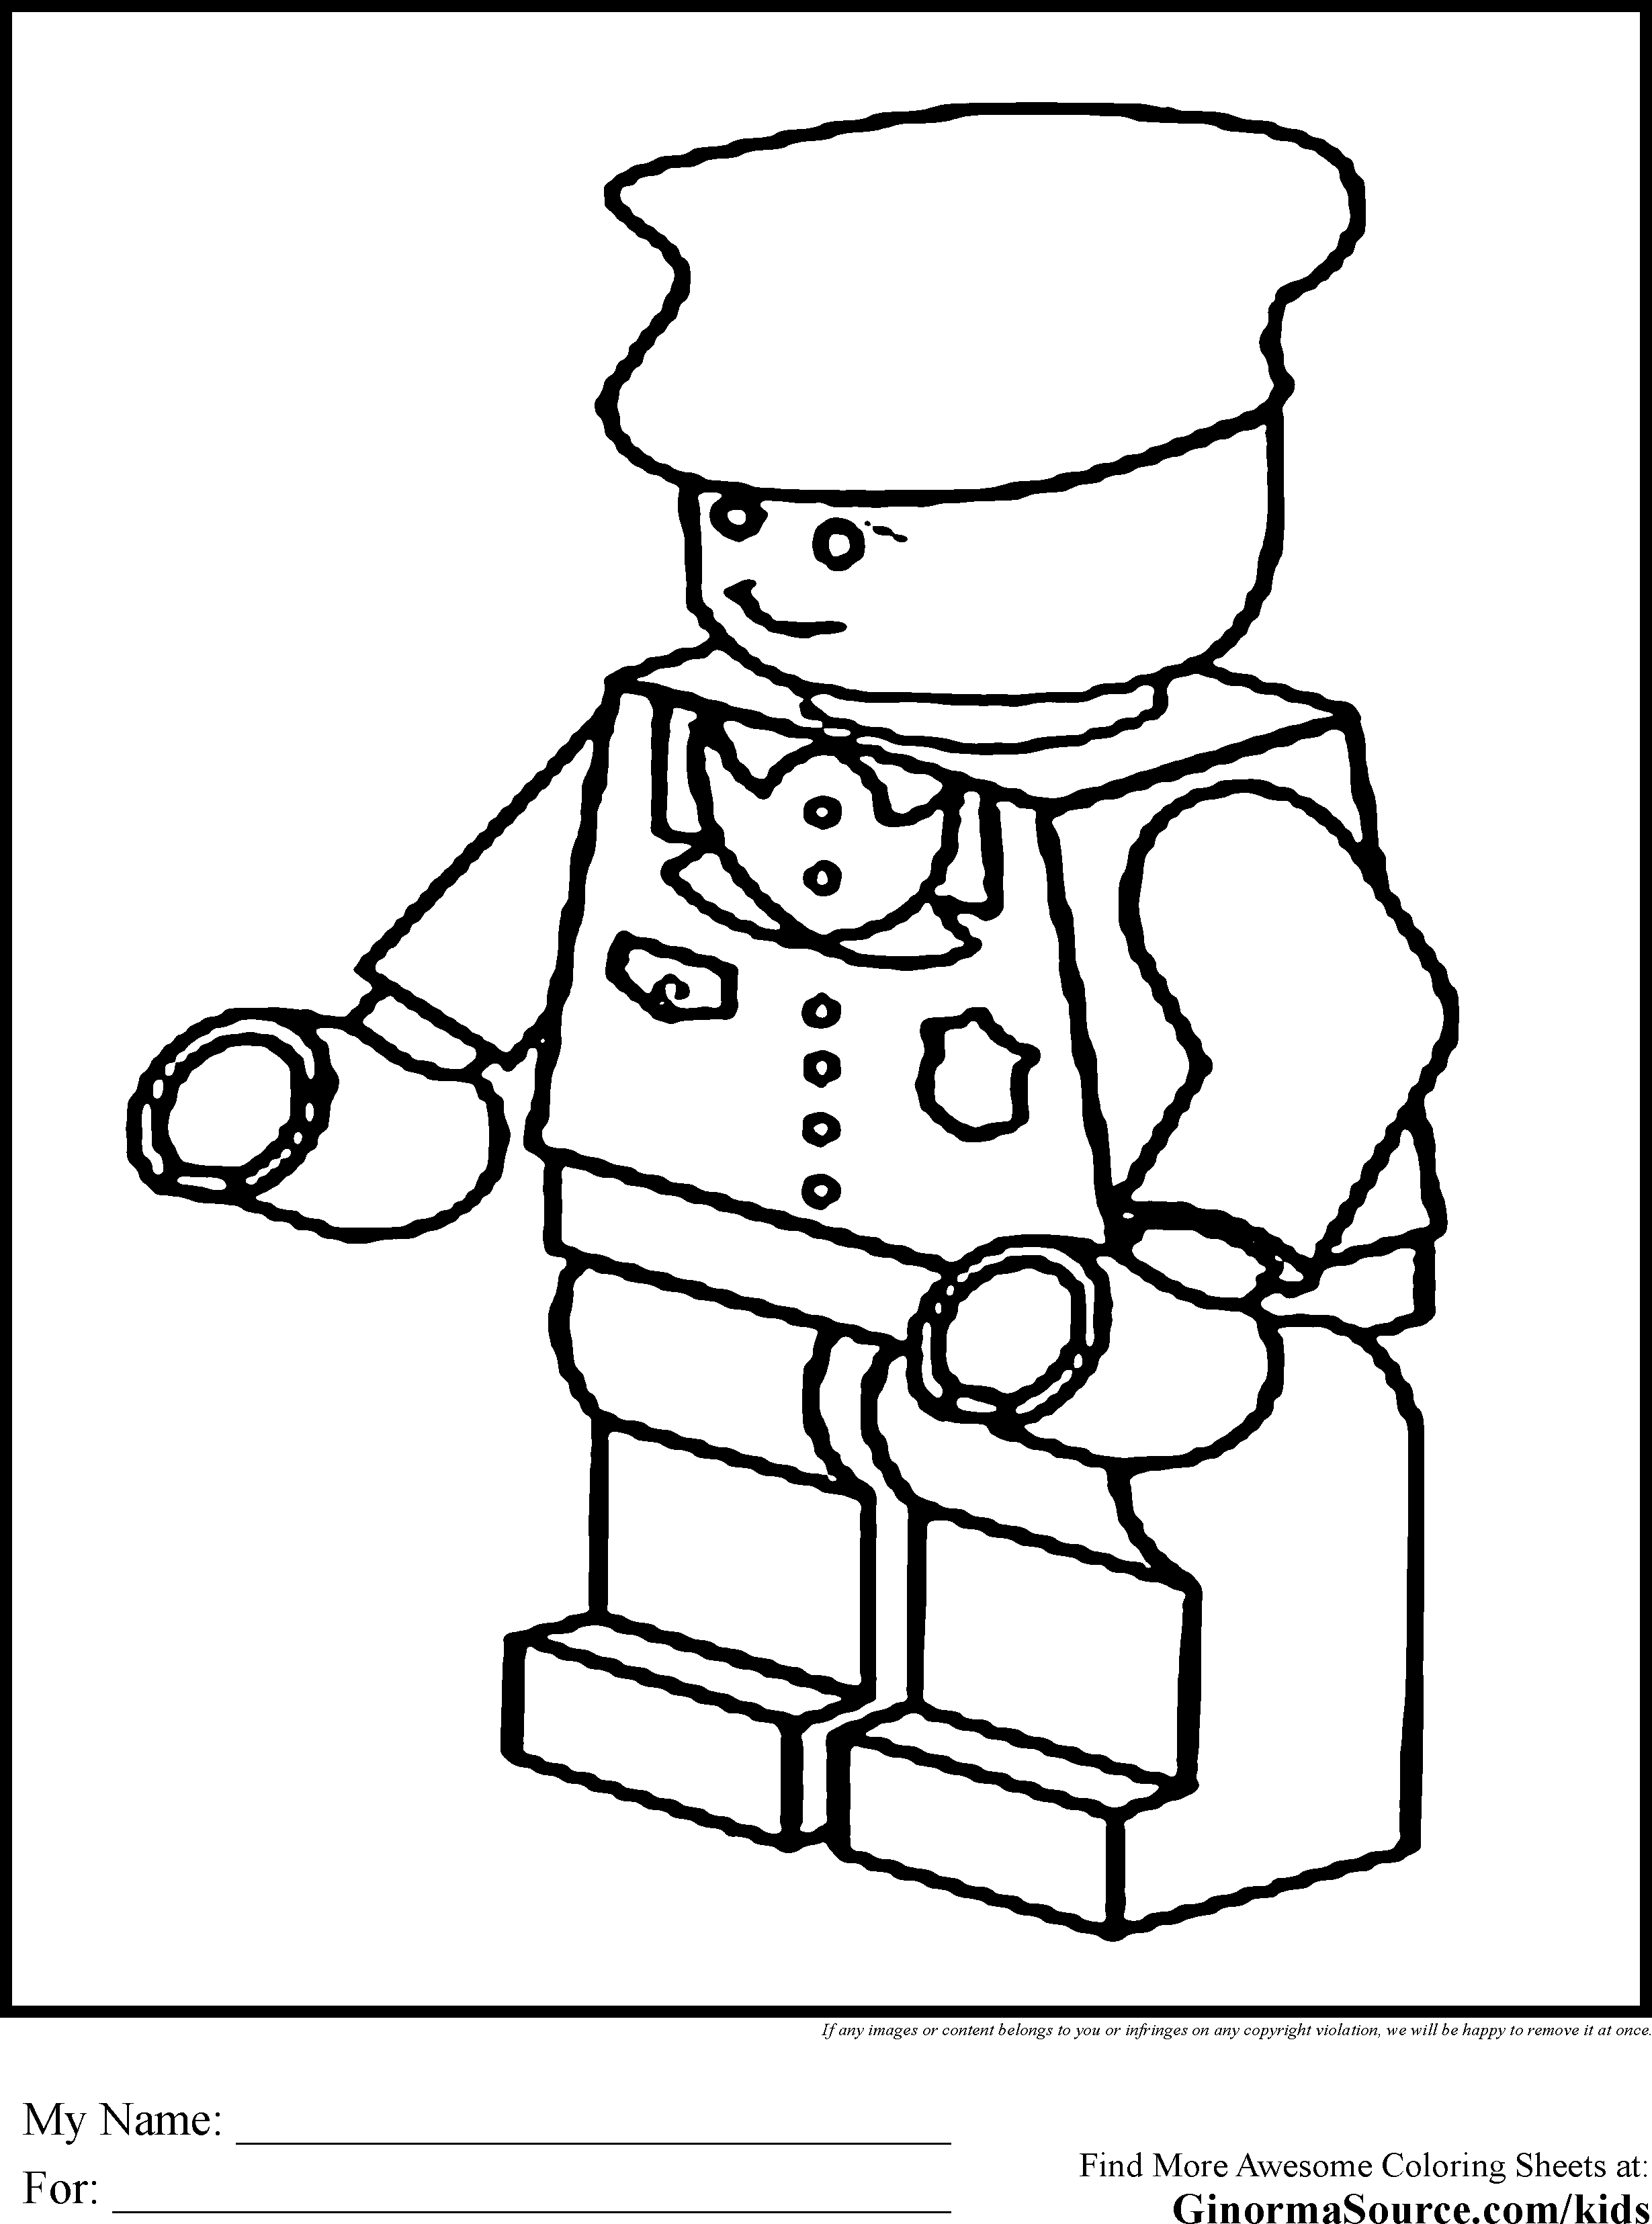 lego train coloring pages lego coloring pages train engineer lego coloring lego coloring pages train